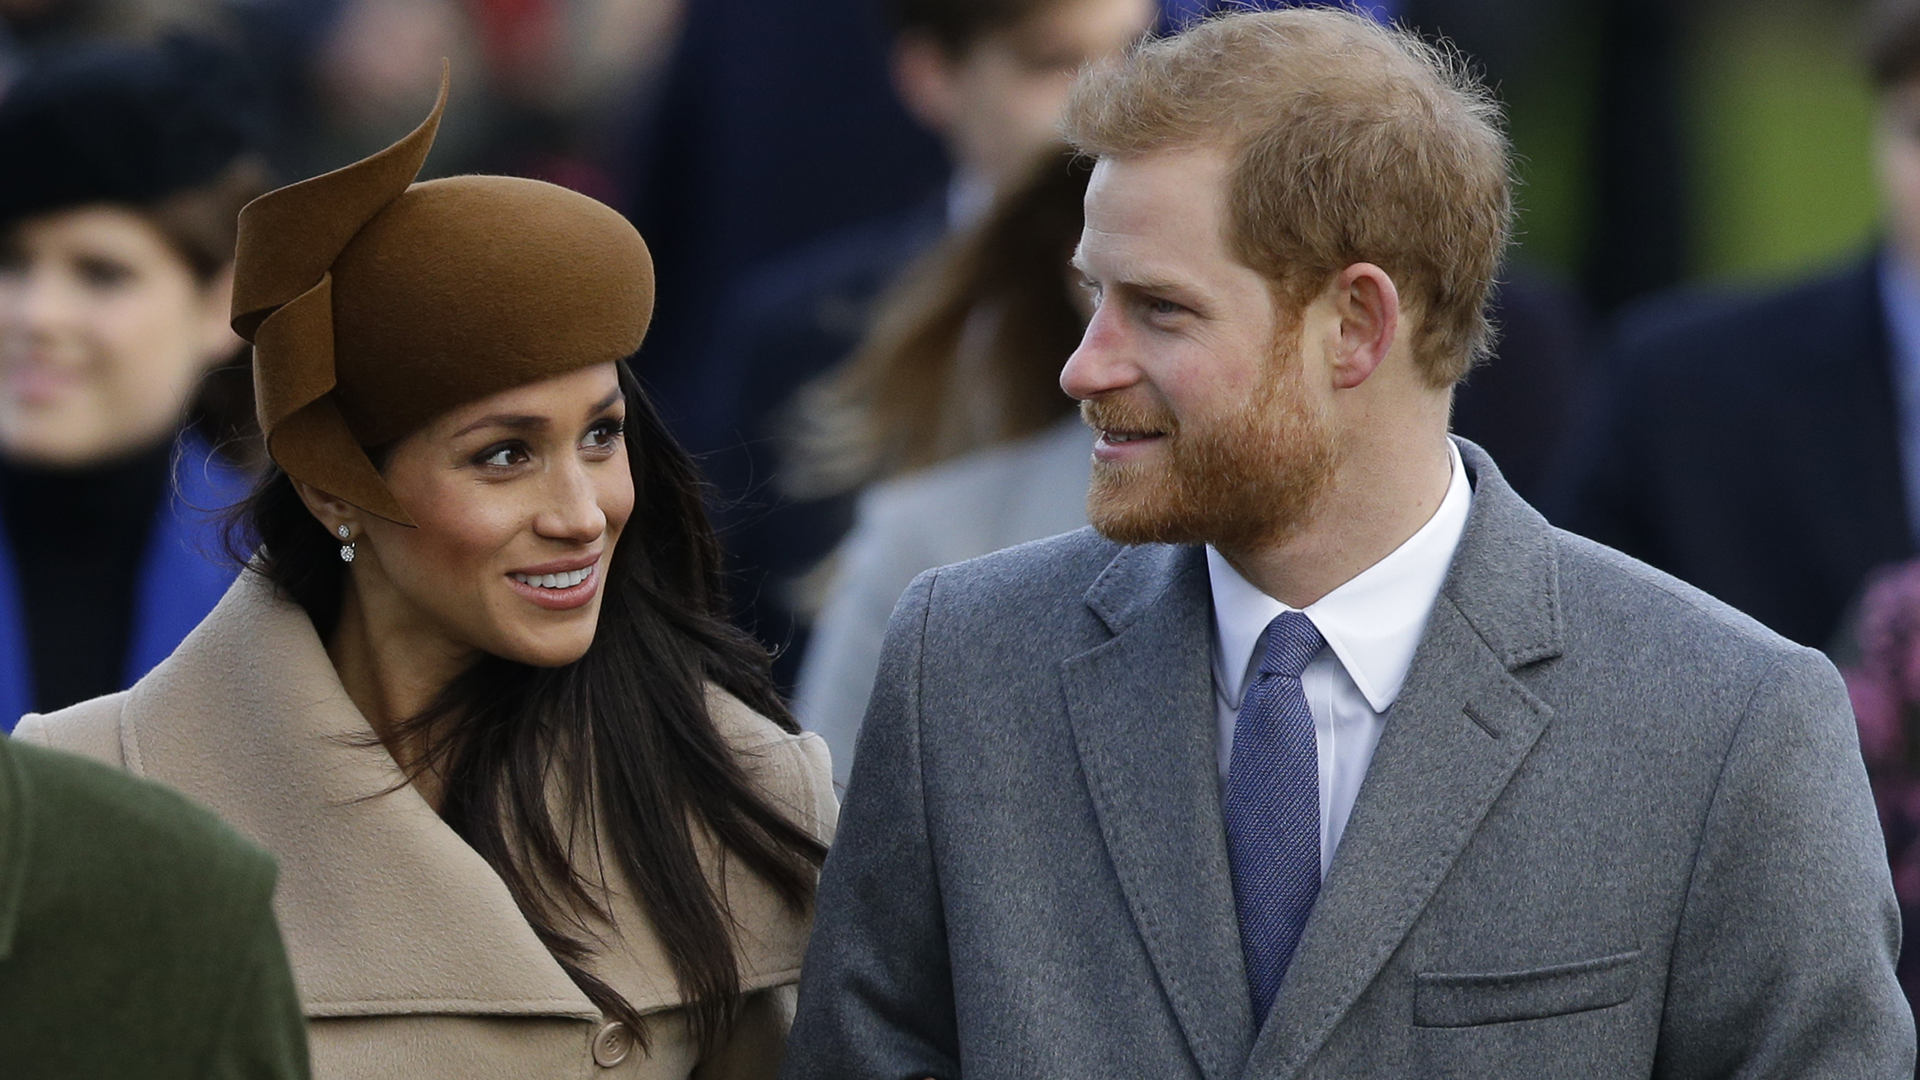 Joining the Royal Family? Expect Snubs and Slights